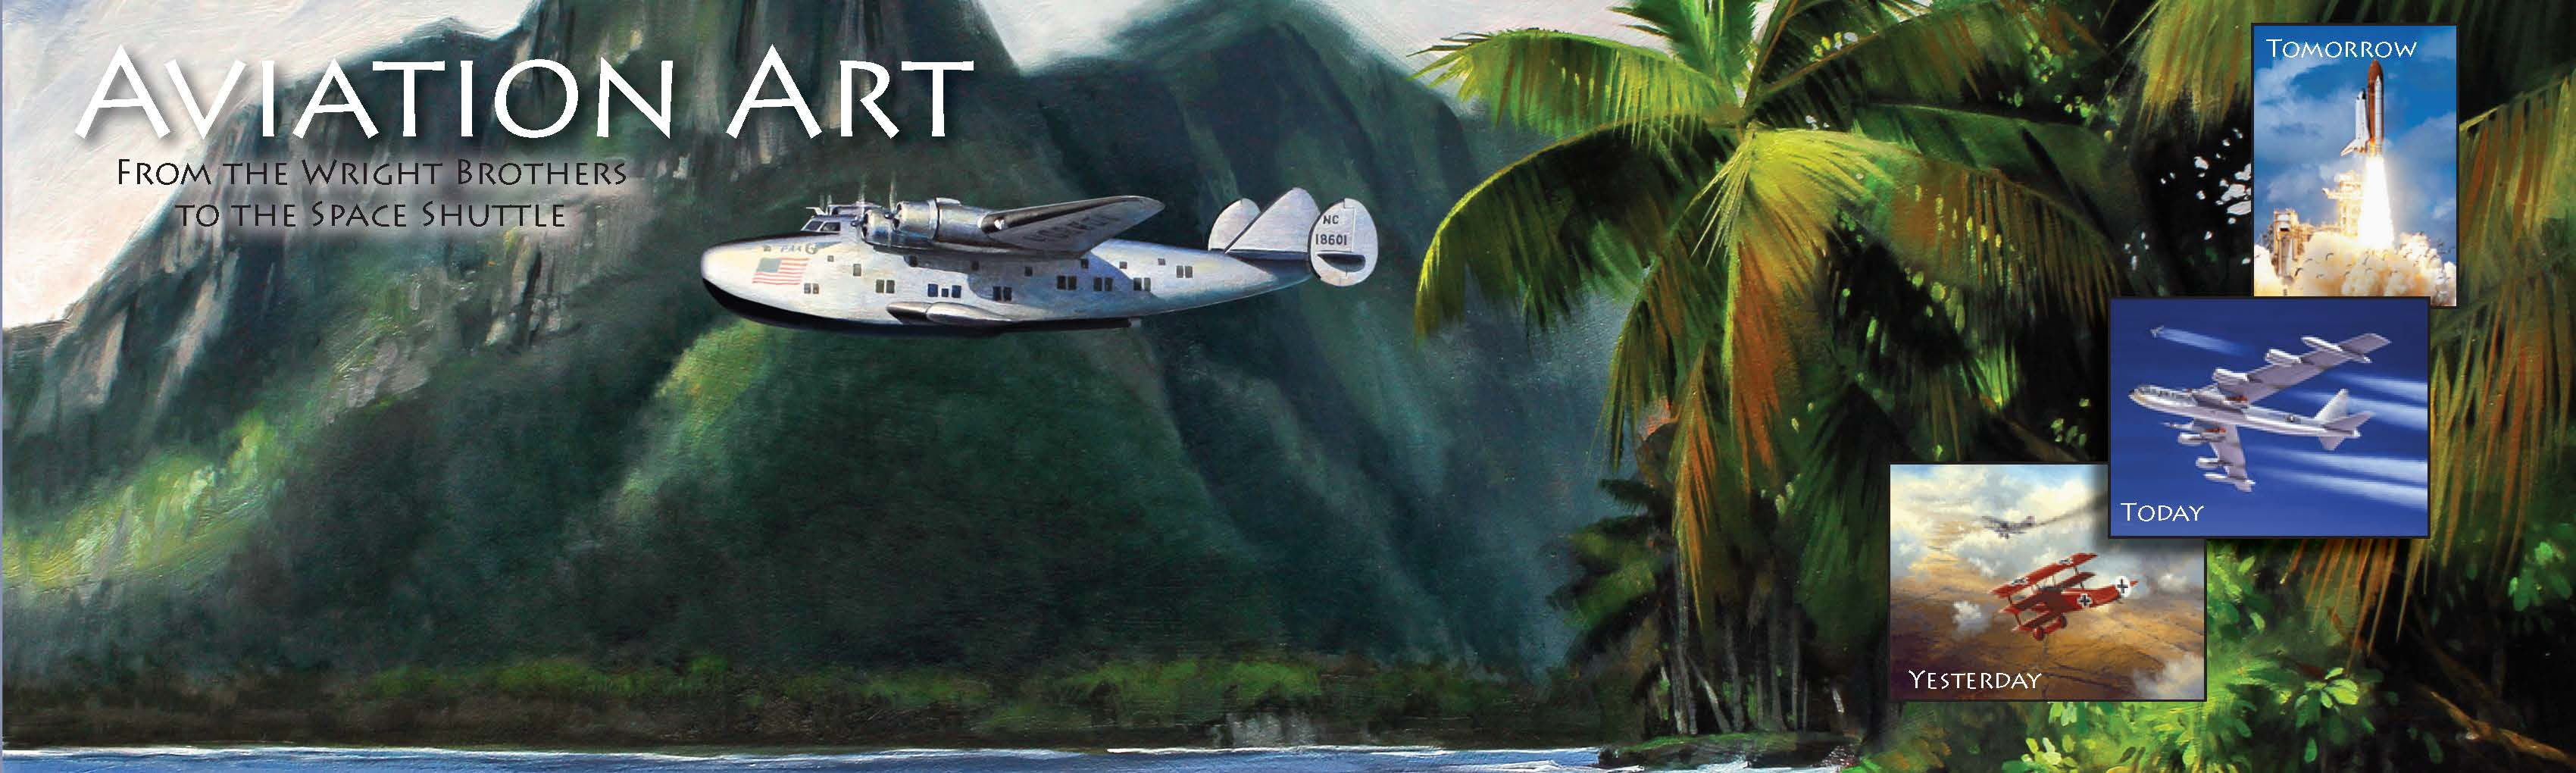 The Largest Aviation Art And Gift Store On Web